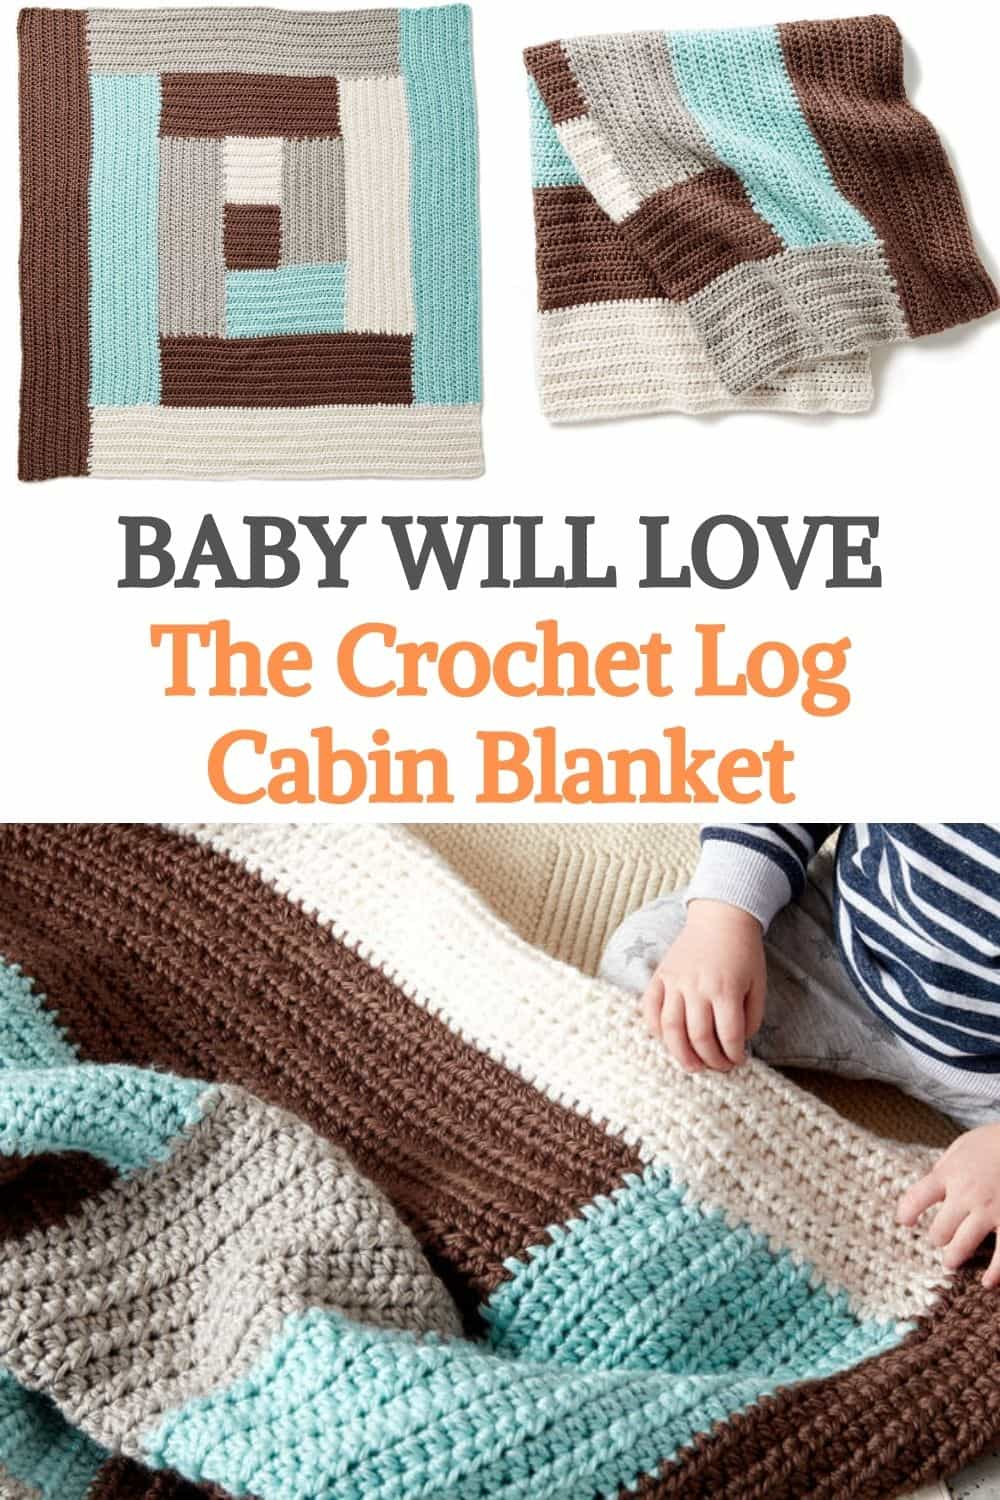 Crochet Log Cabin Blanket